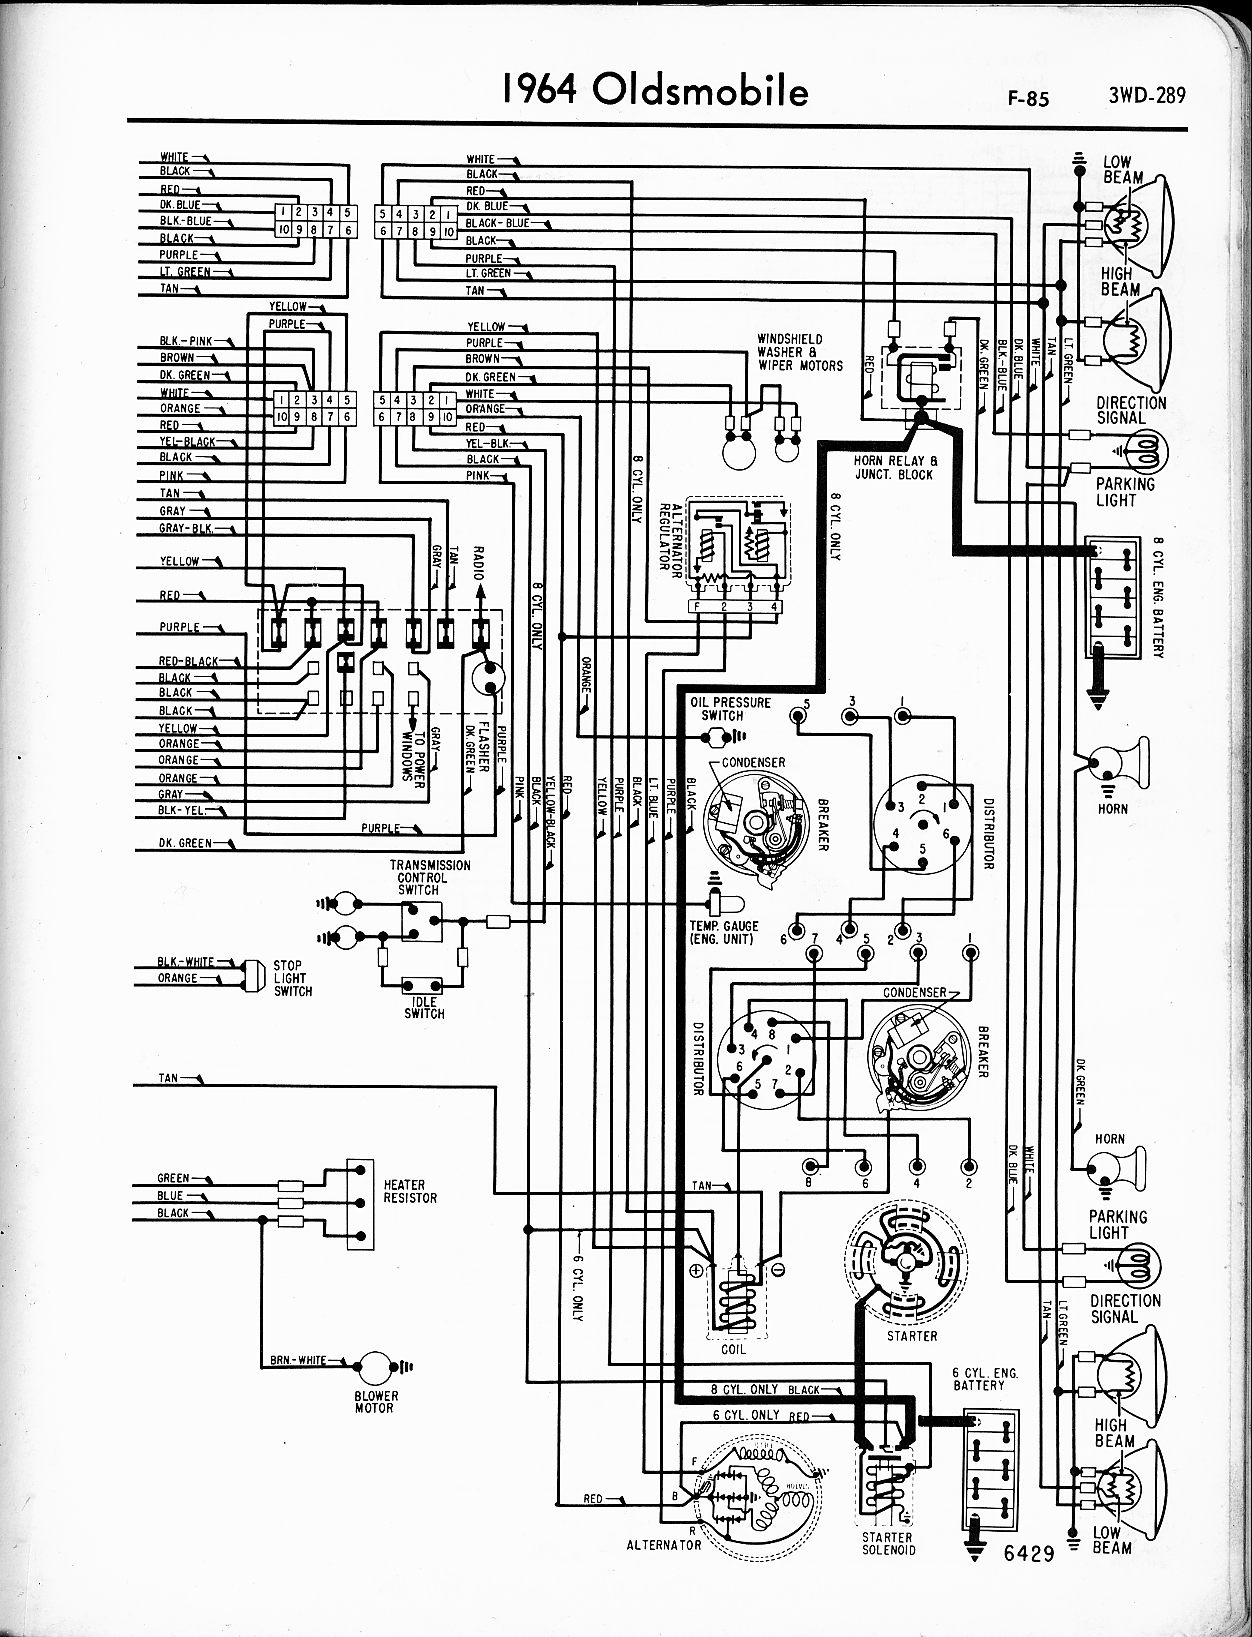 MWire5765 289 oldsmobile wiring diagrams the old car manual project  at crackthecode.co